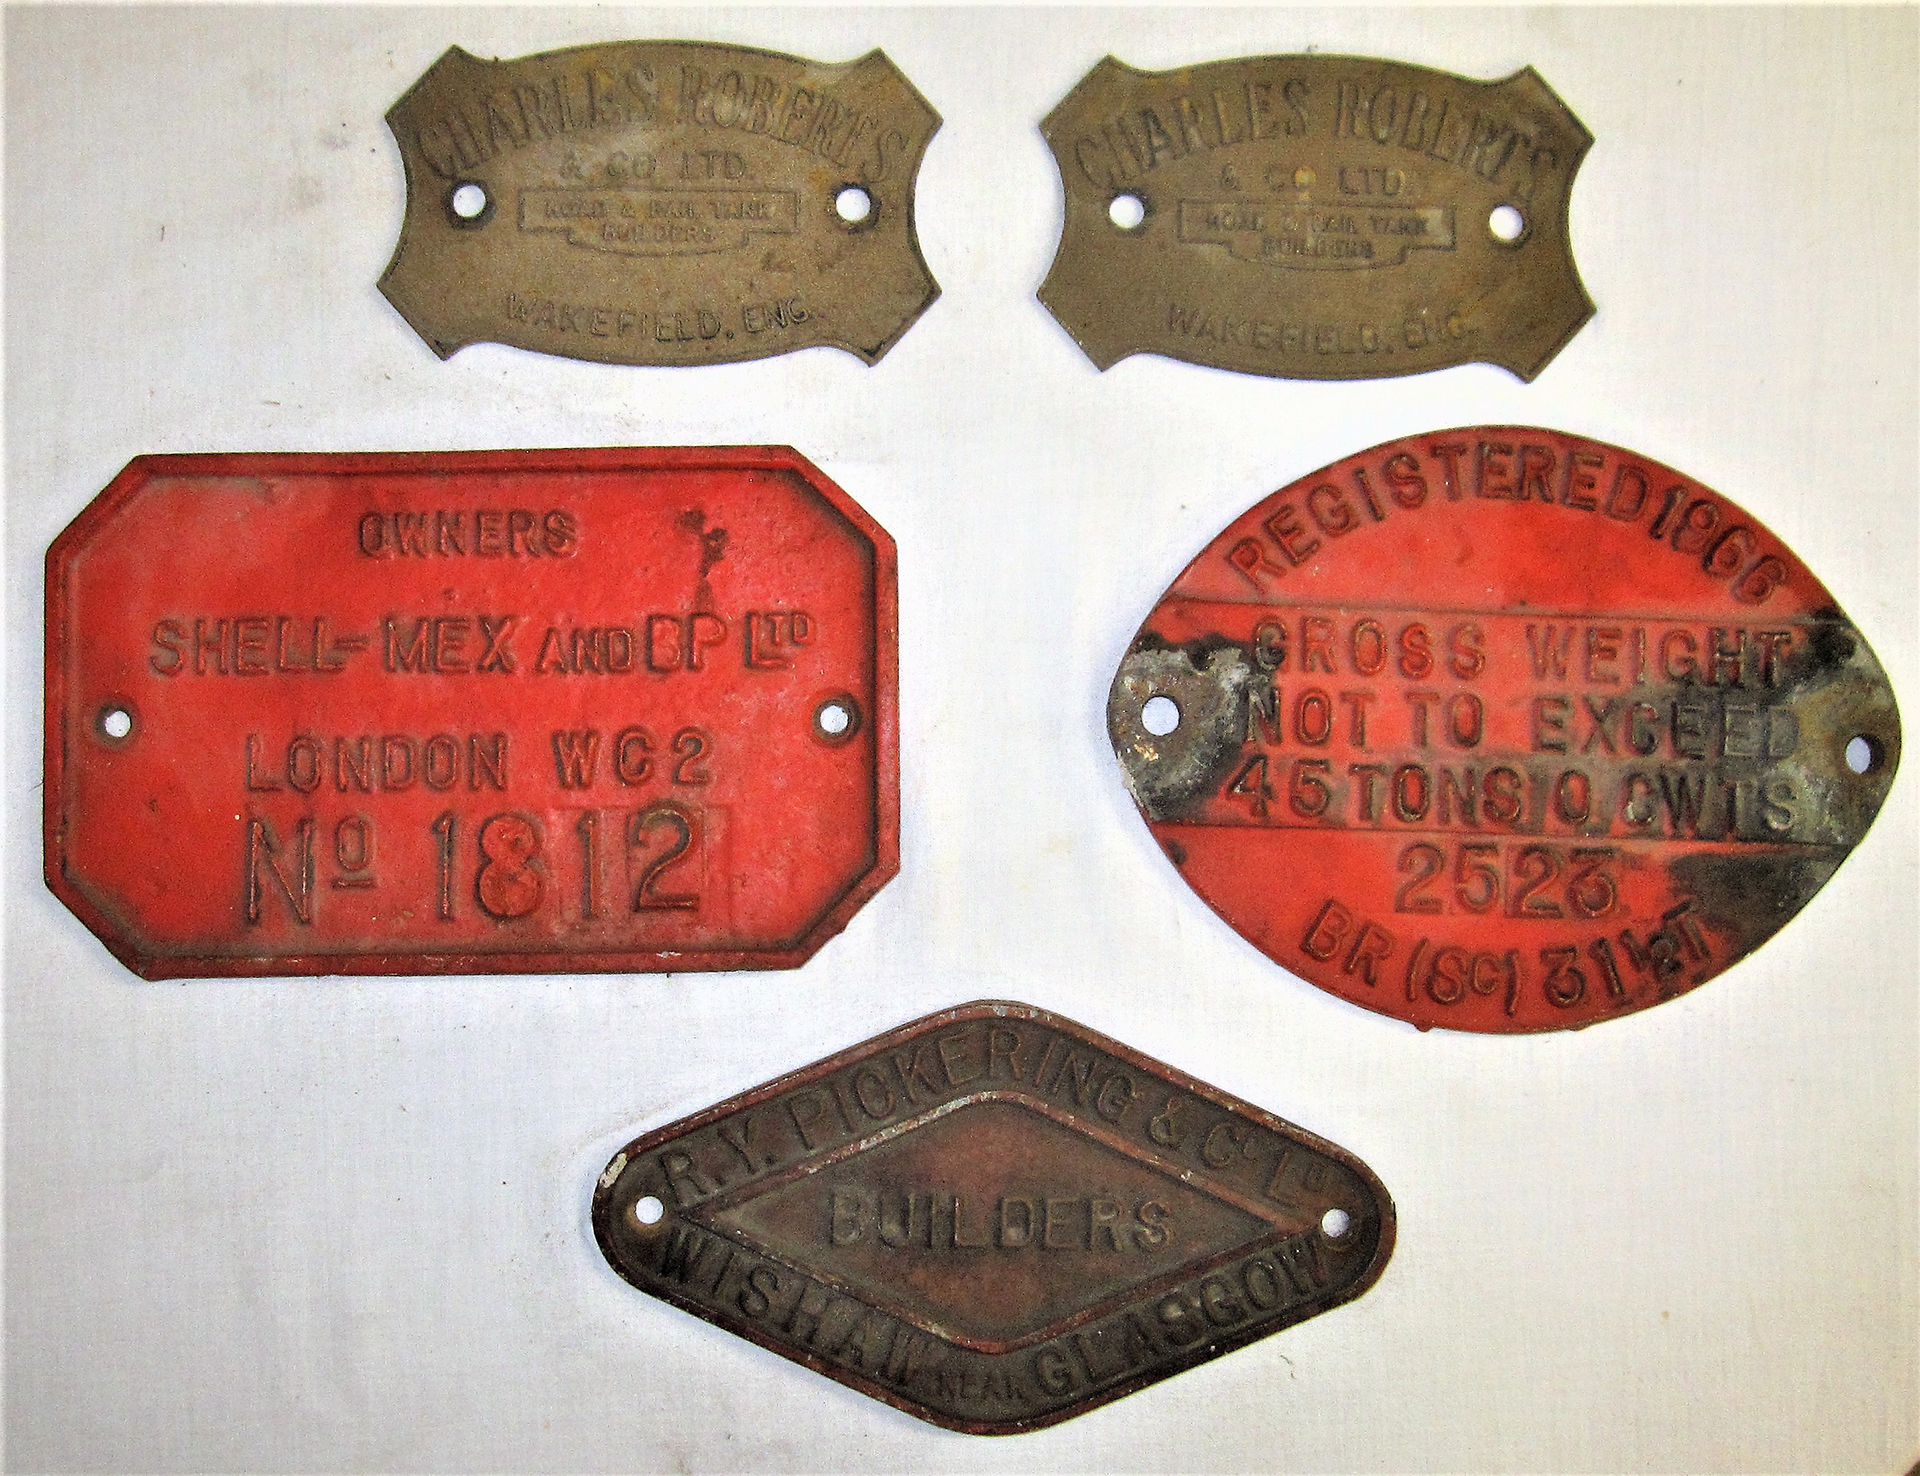 A collection of 5 x Wagon Plates. OWNERS SHELL-MEX No 1812. RV PICKERING CO LTD WISHAW & GLASCOW.